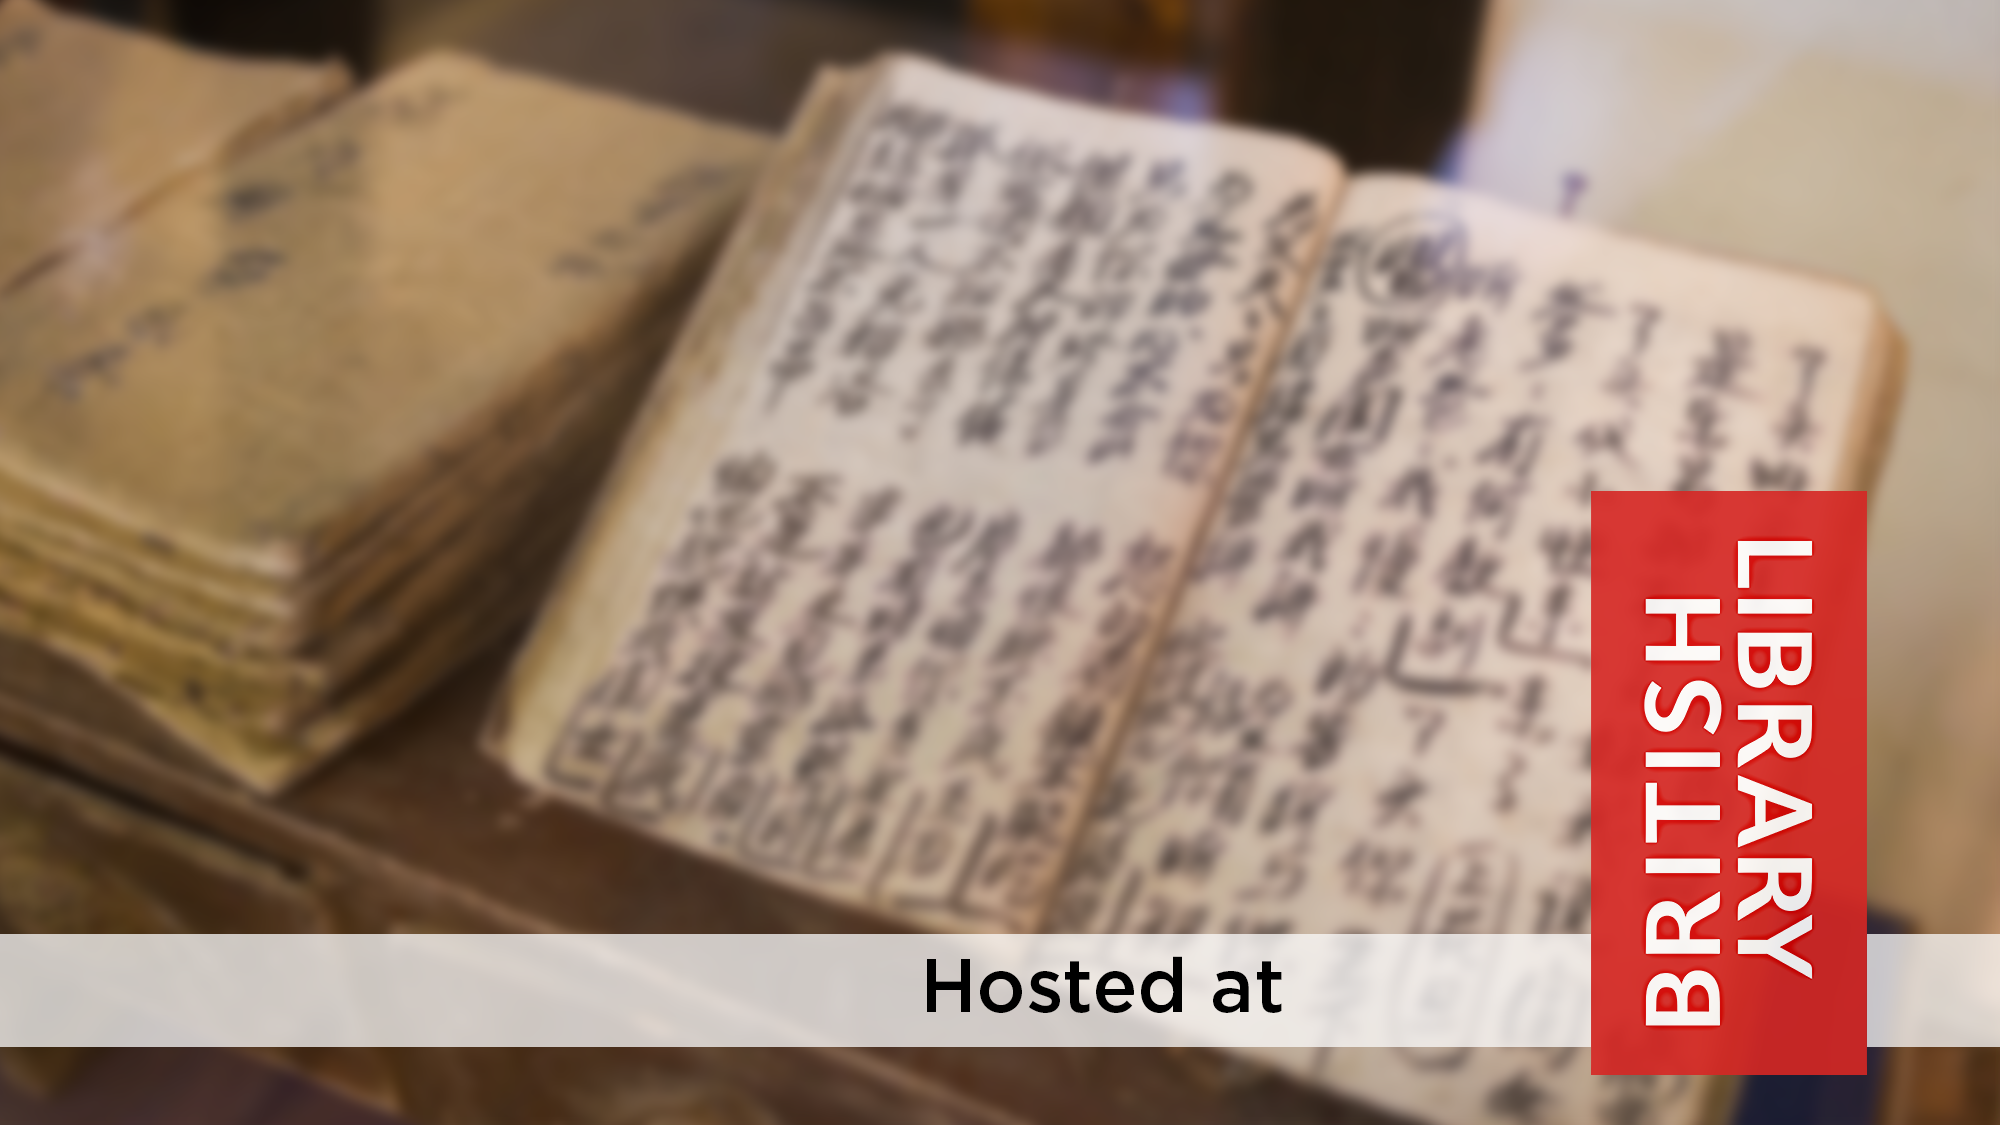 Automating the recognition of historical Chinese handwritten texts